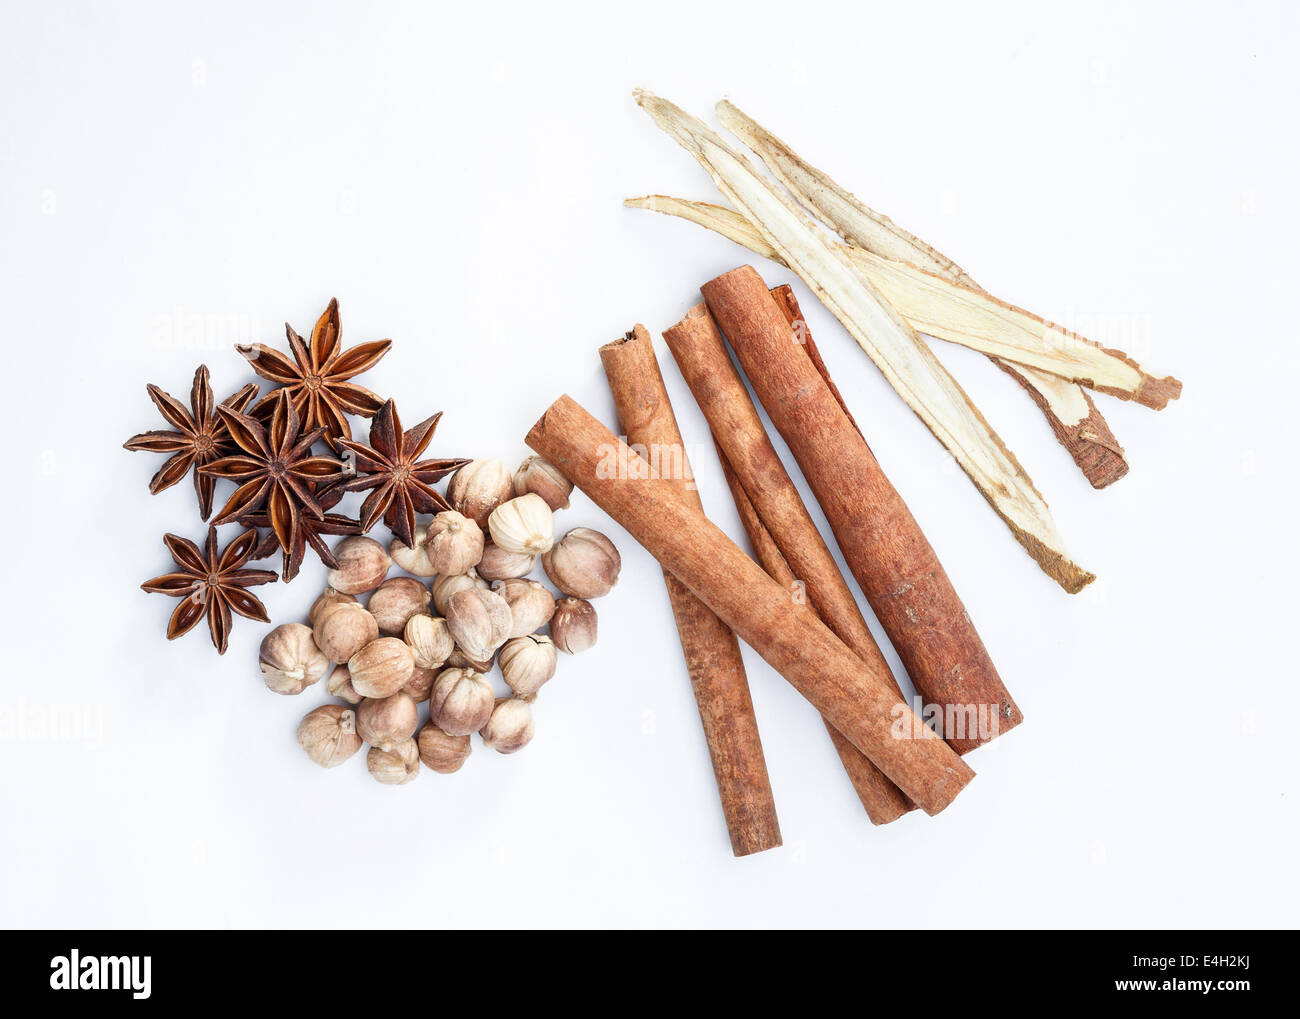 Cardamom cinnamon star aniseed and liquorice herbs for cooking isolated on white - Stock Image